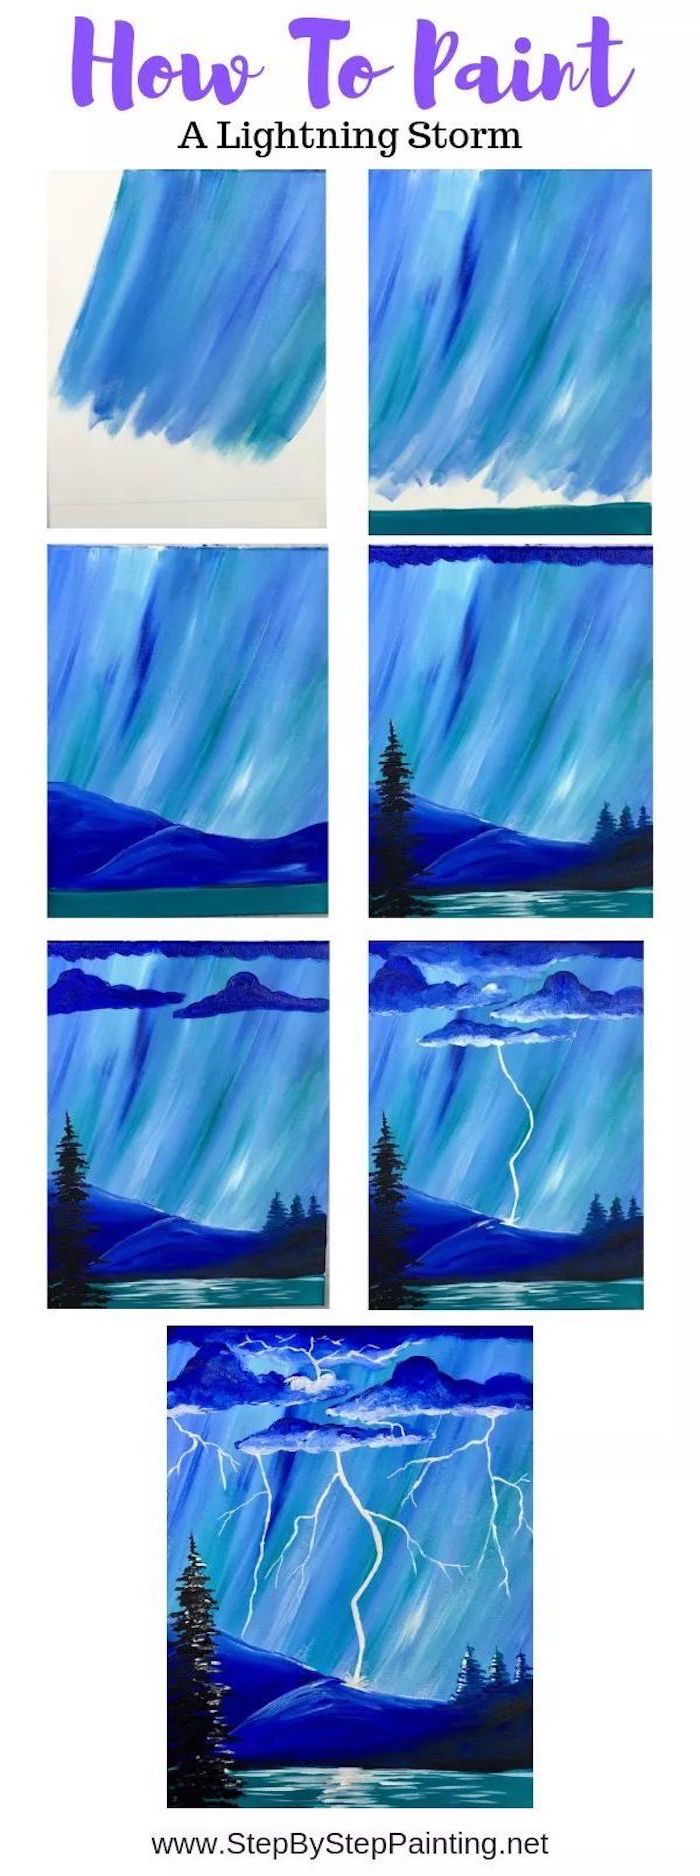 acrylic painting techniques, how to paint a lightning storm, photo collage of step by step diy tutorial